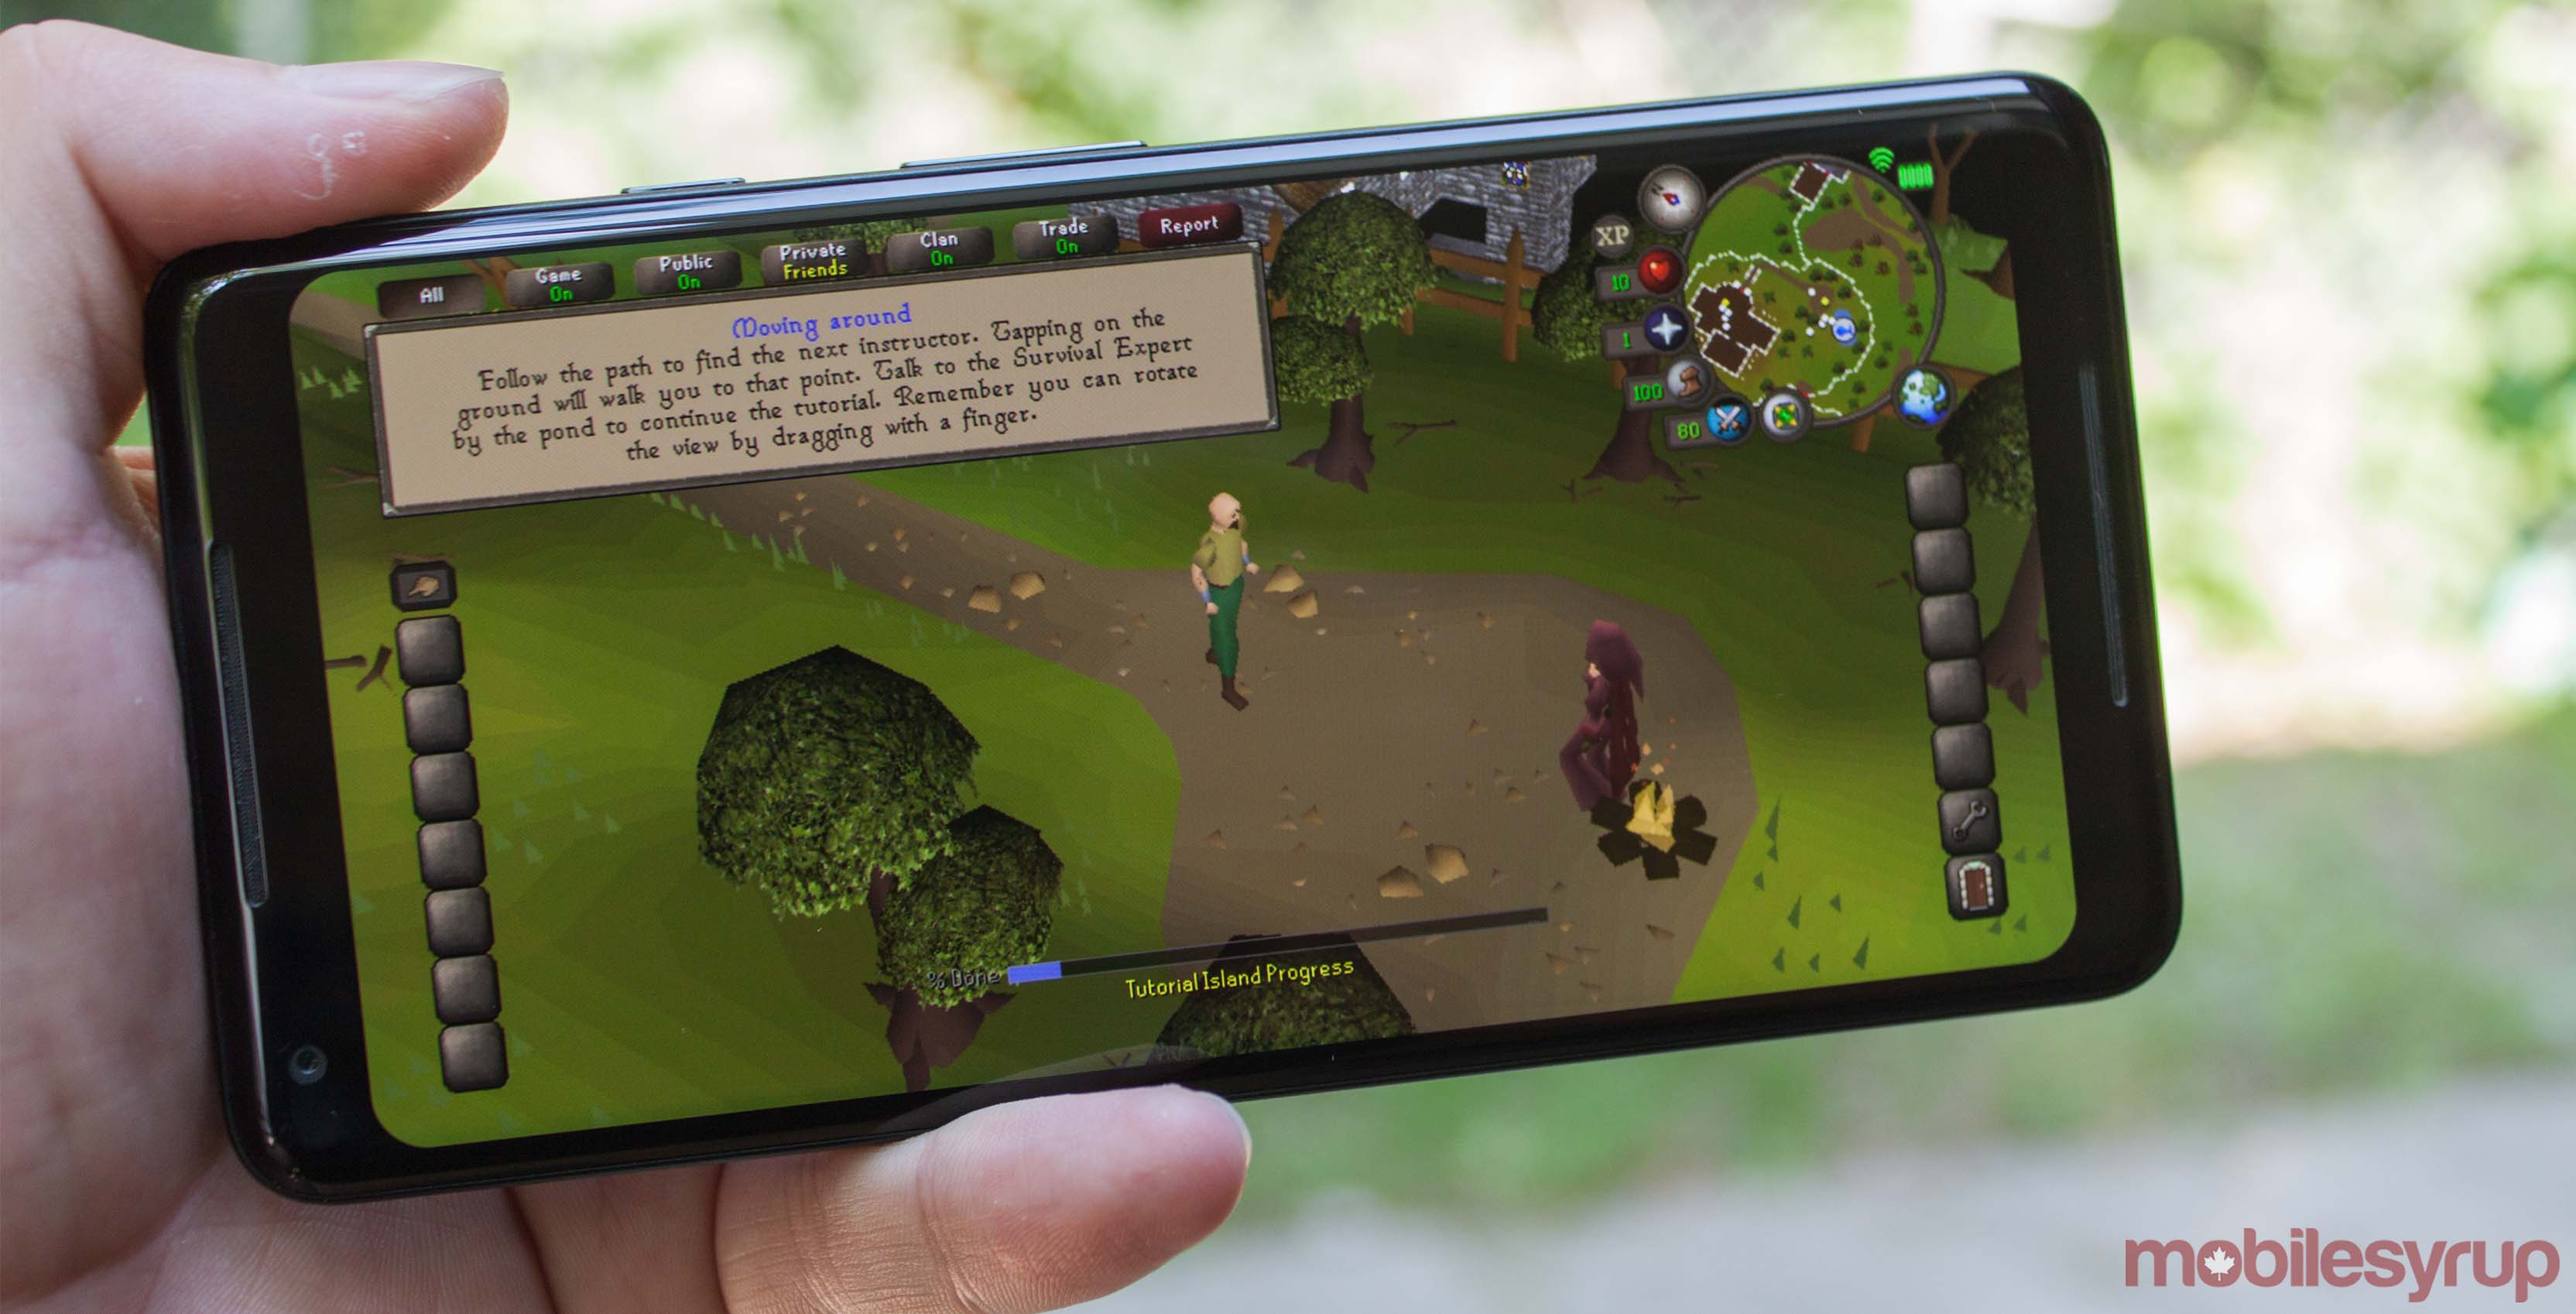 RuneScape for mobile leaving beta in October, Canadians can